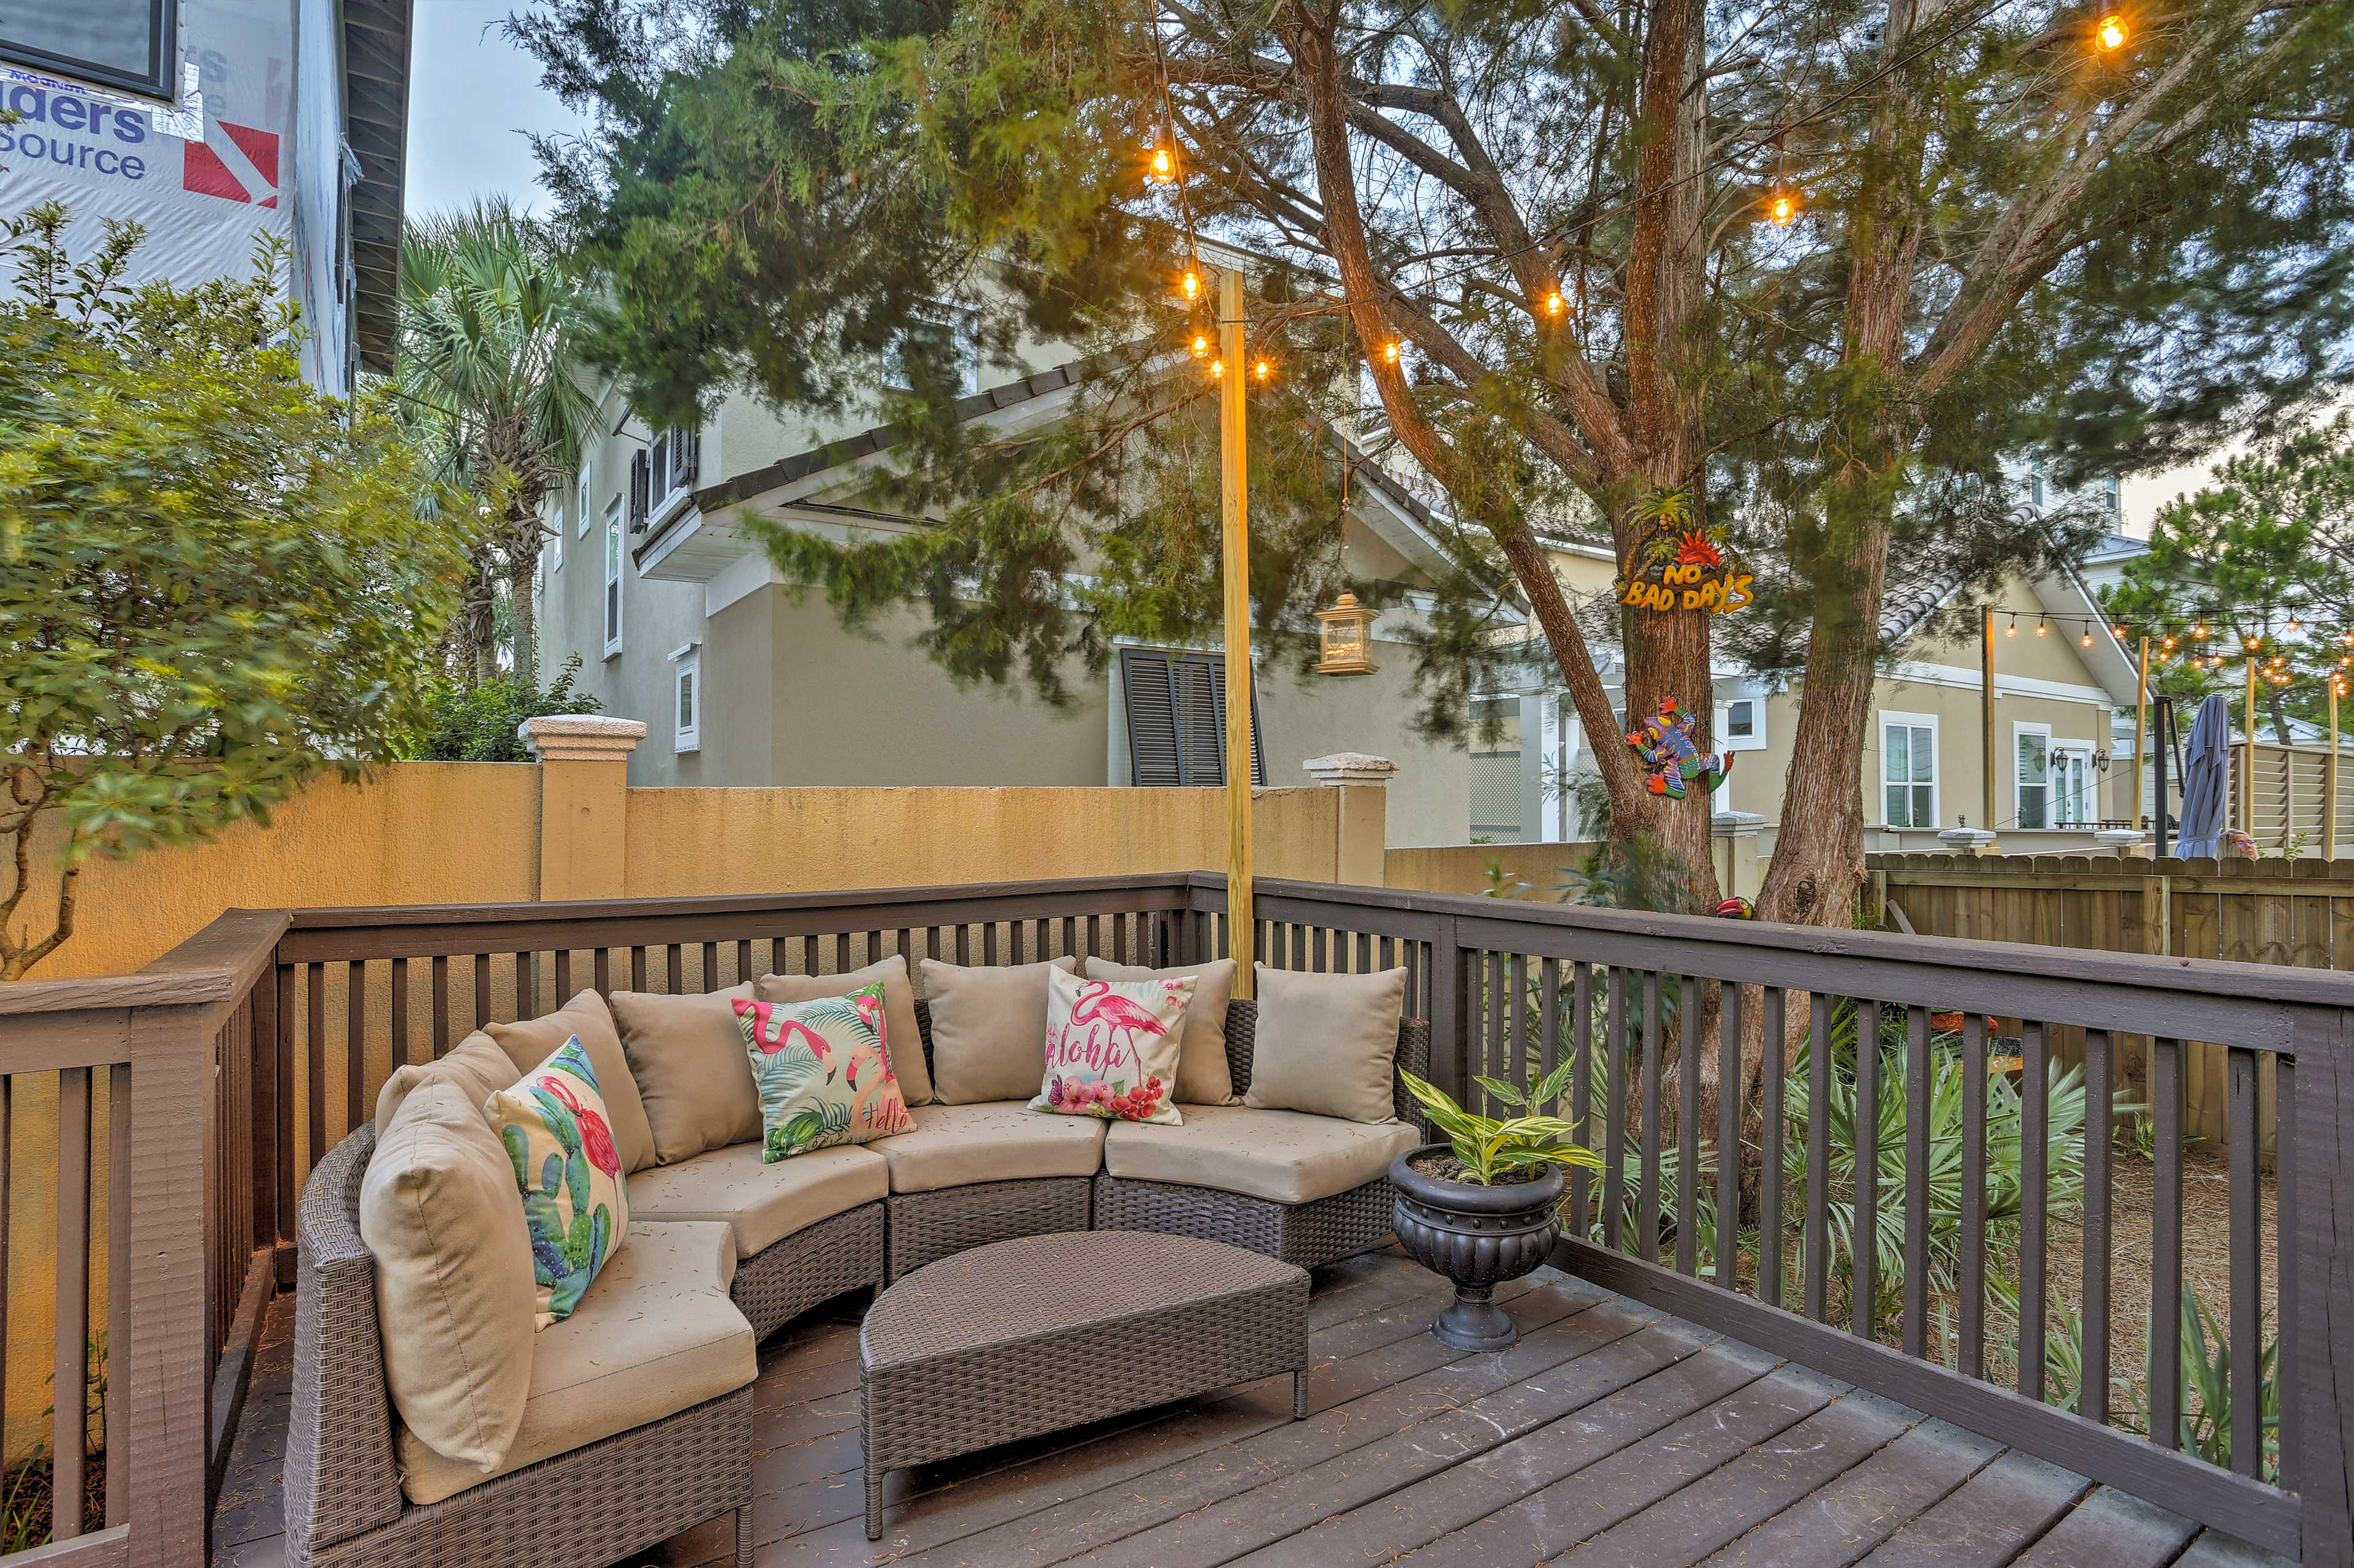 The home offers a spacious deck with comfortable outdoor seating.